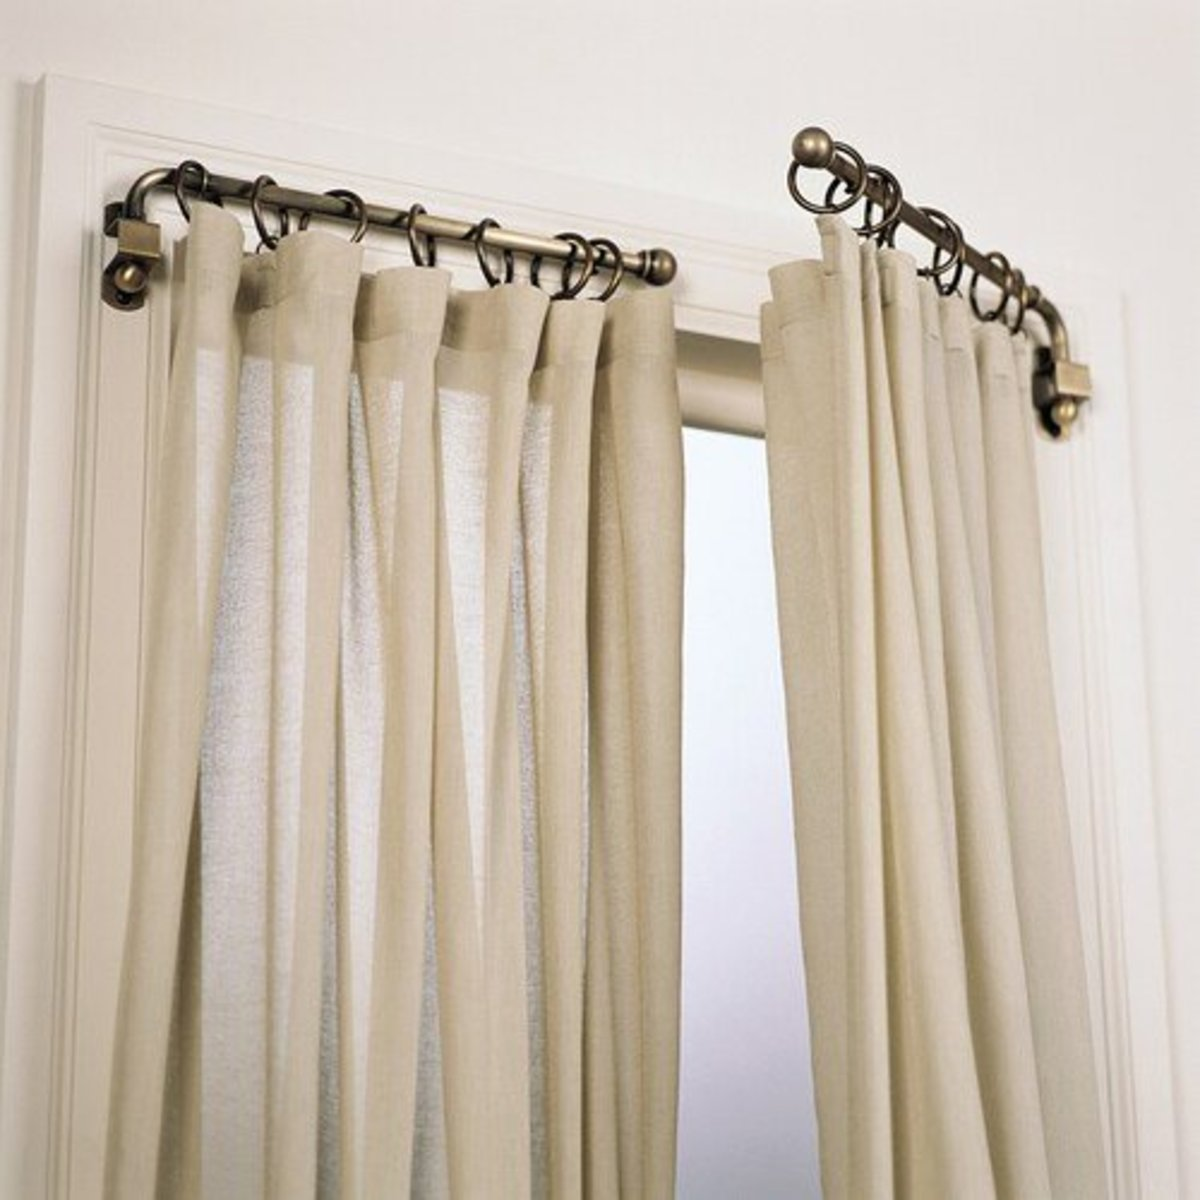 Swing arm rods are great for french doors or narrow windows.